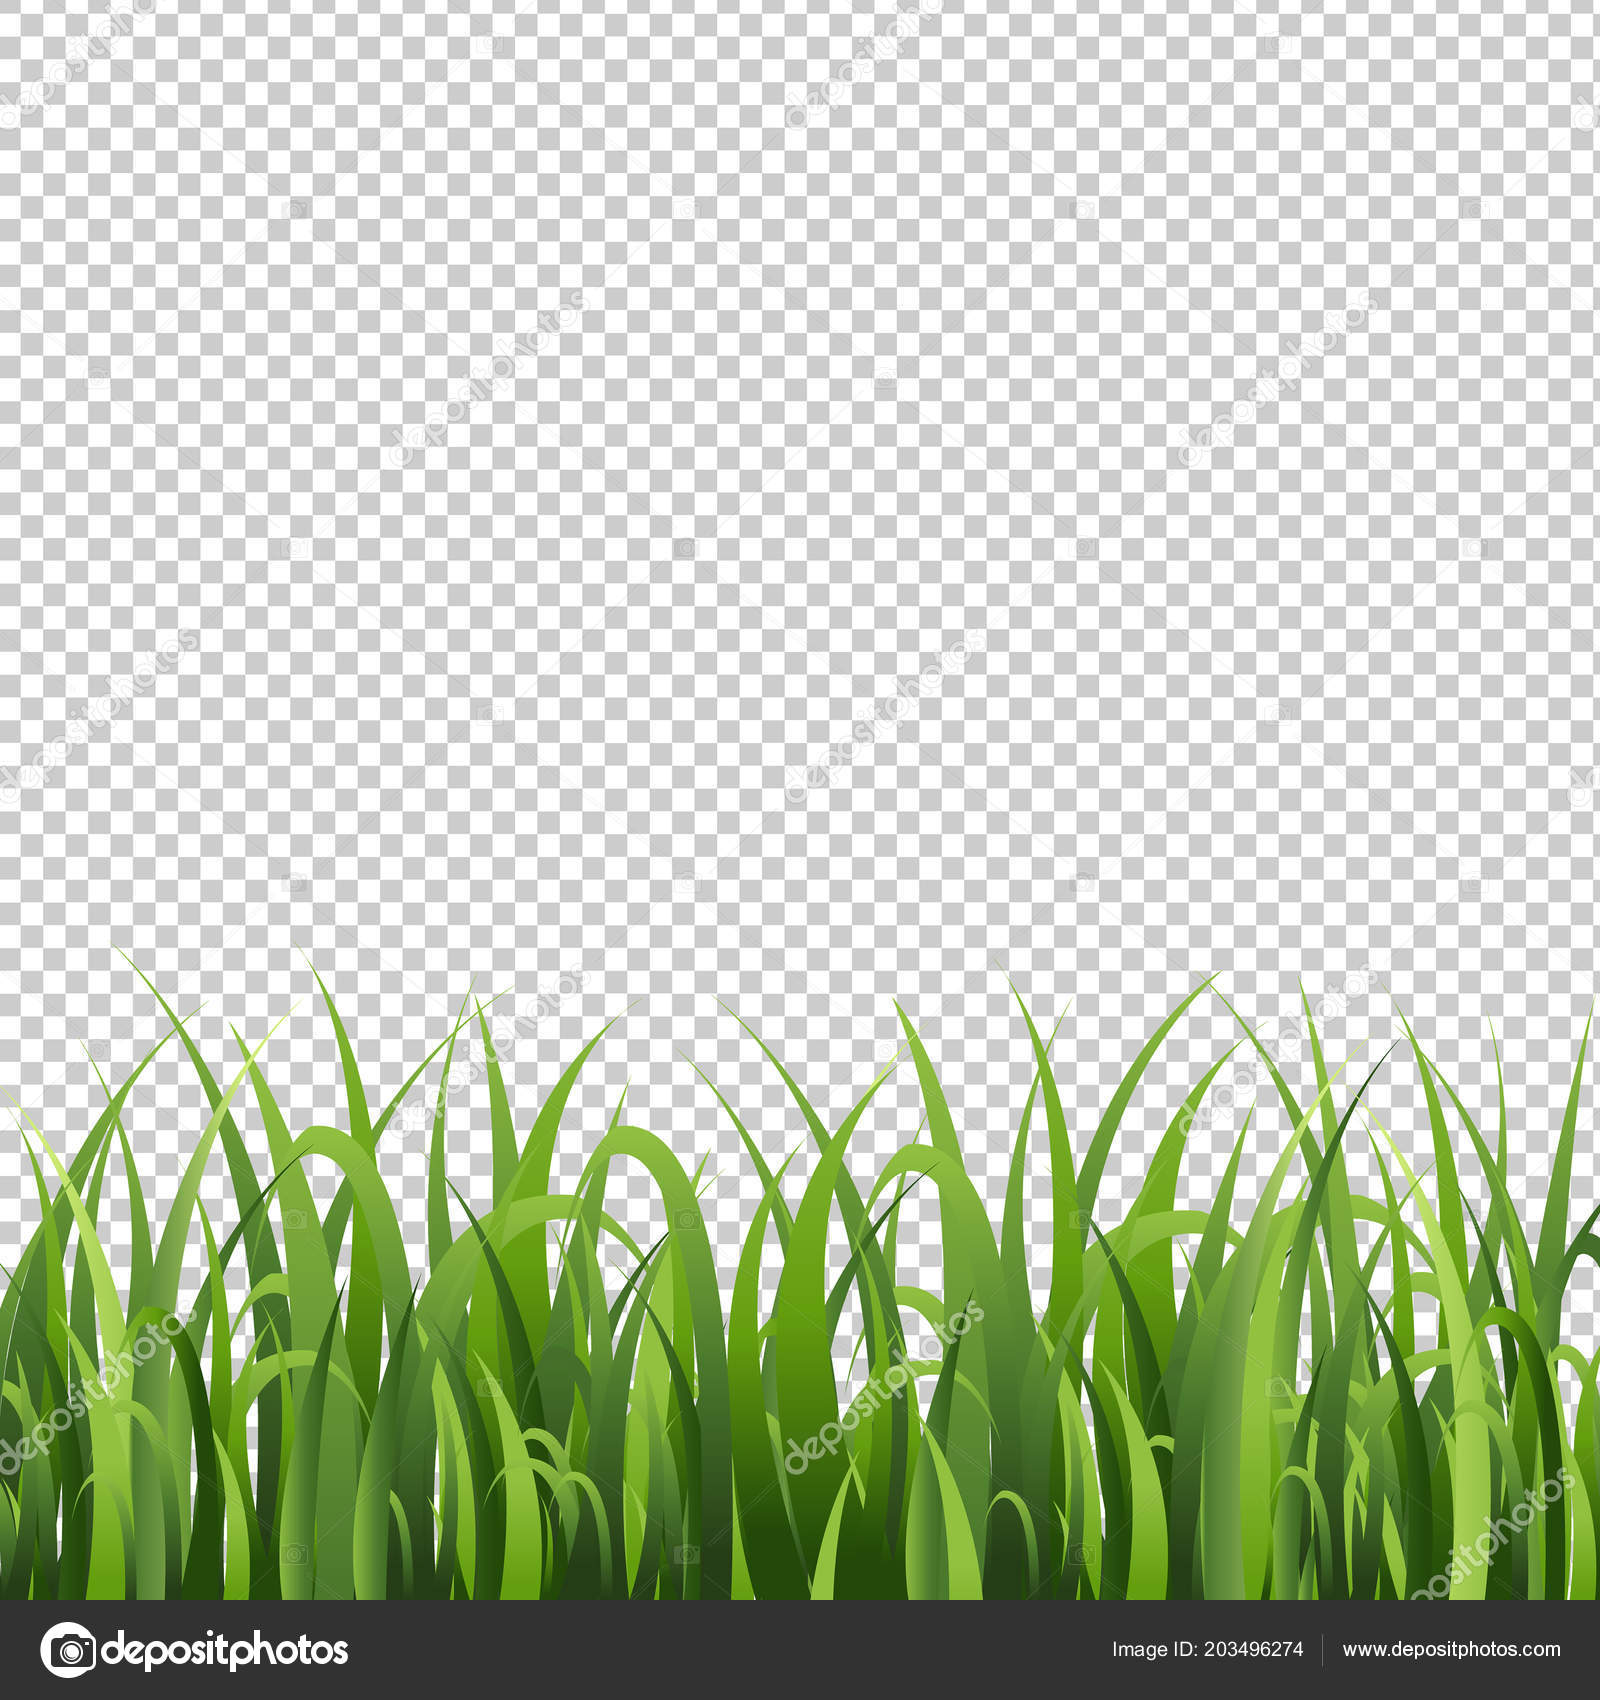 grass border no background summer green grass border isolated transparent background vector illustration stock